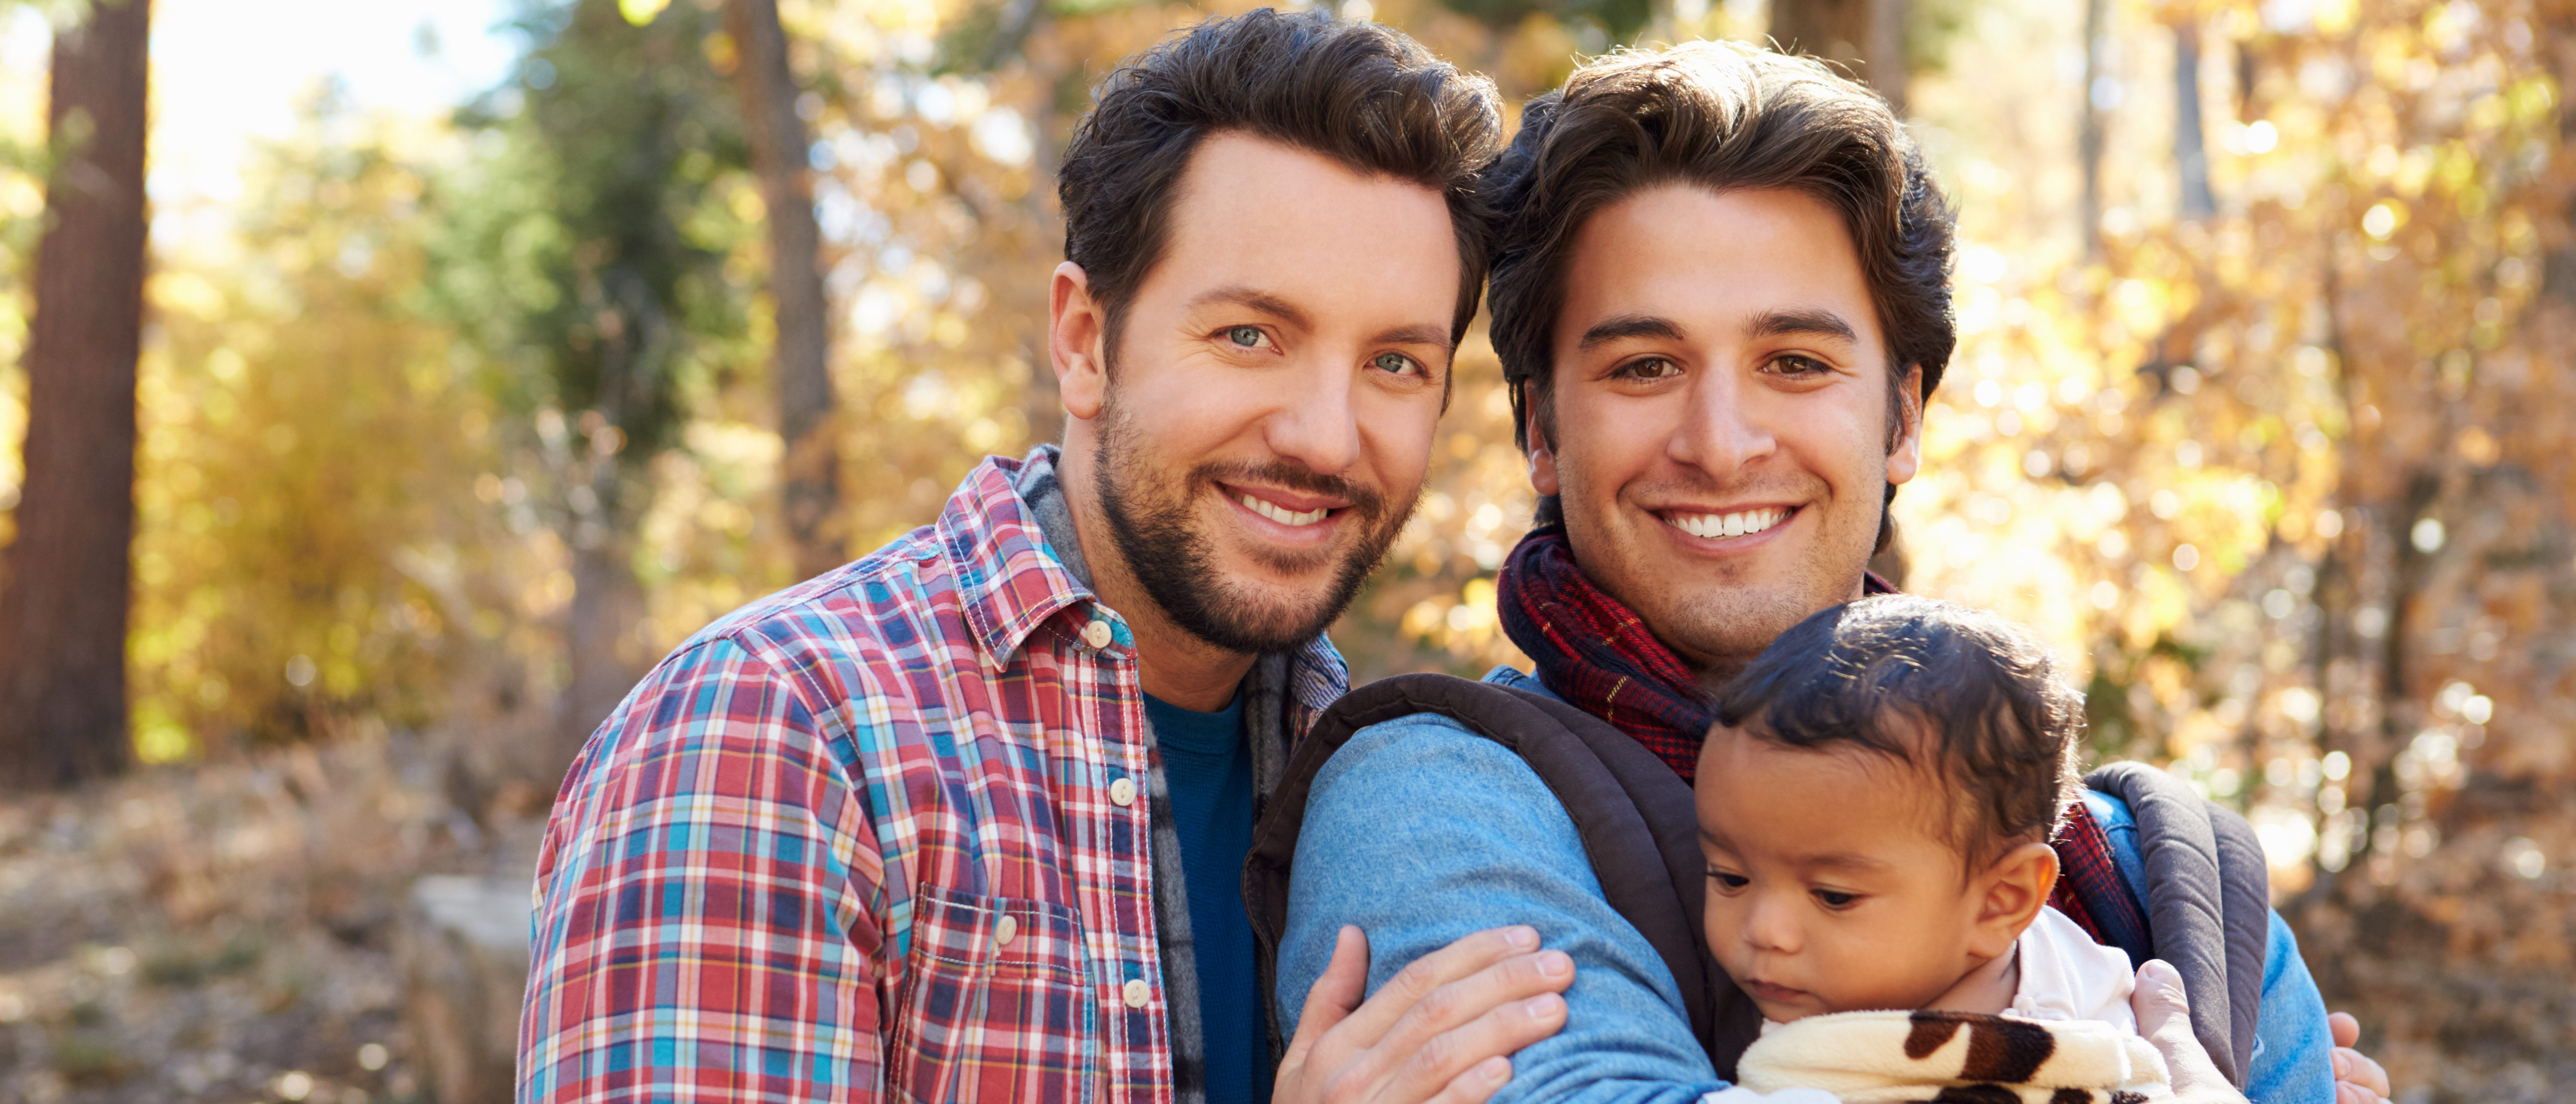 Gay Male Couple With Baby Walking Through Fall Woodland. (Shutterstock/Monkey Business News).